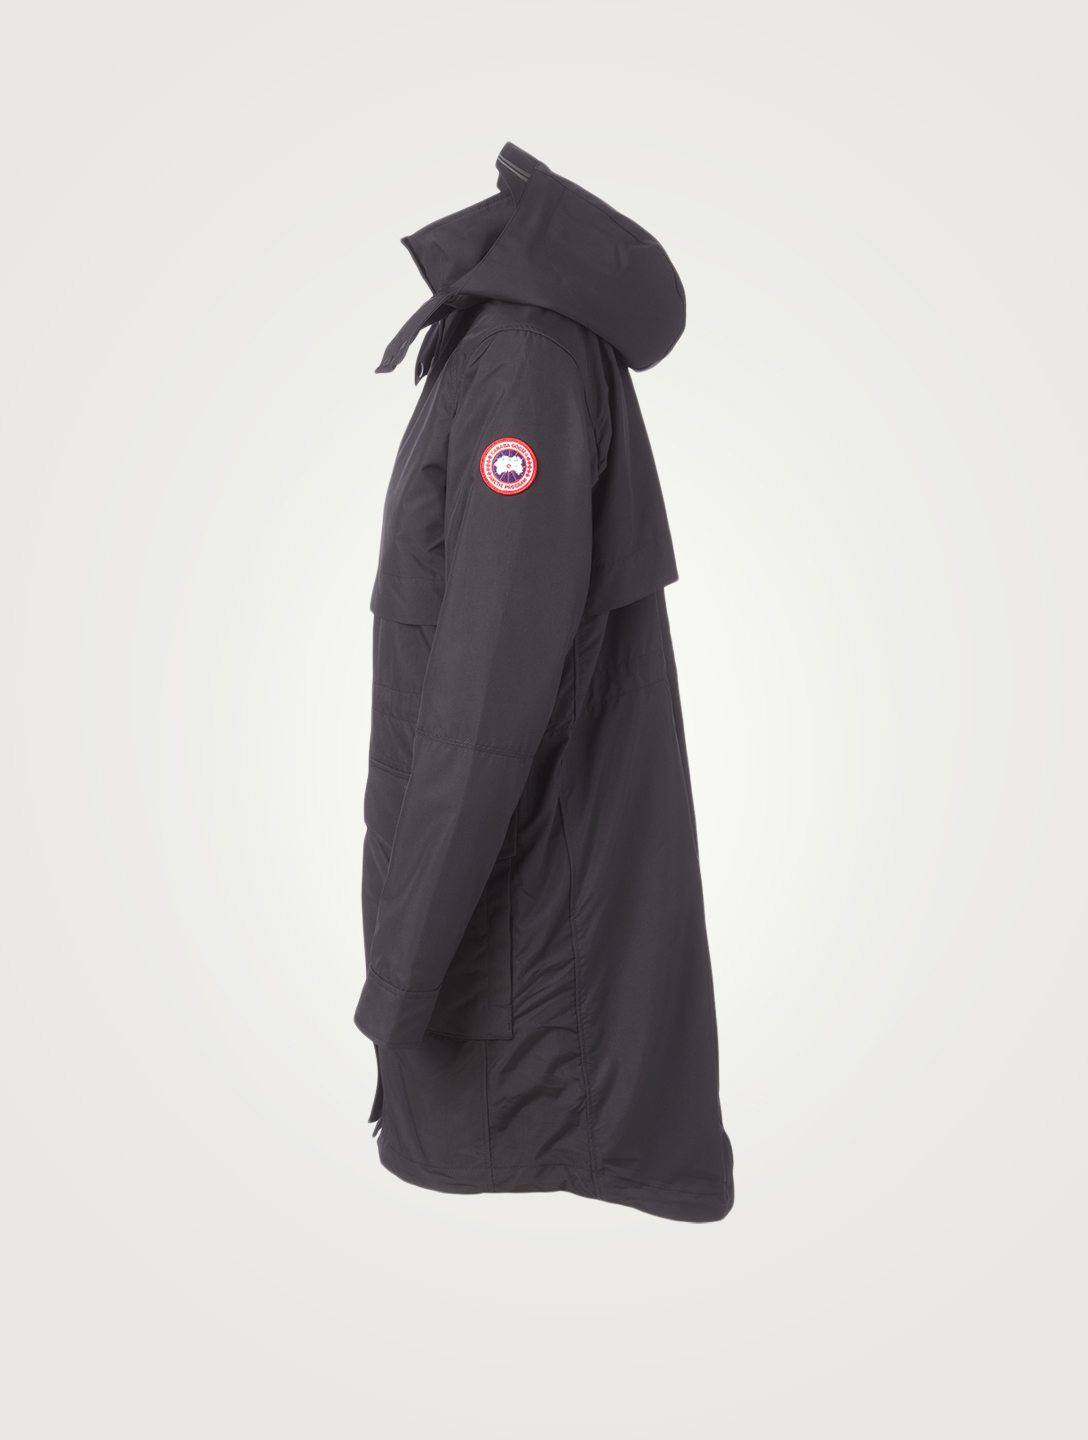 CANADA GOOSE Cavalry Trench Coat Women's Black